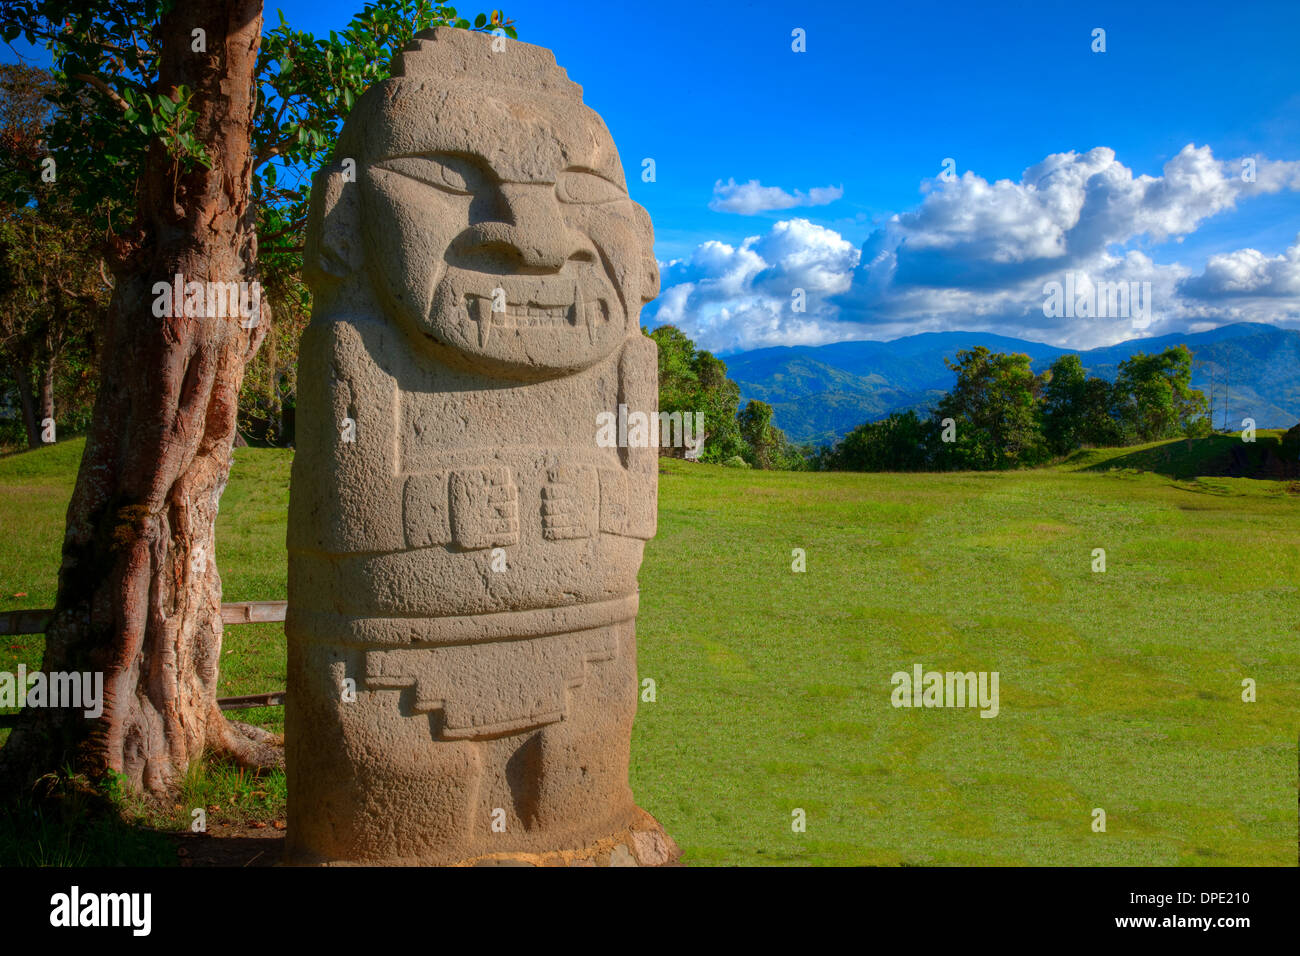 Ancient statue and the Andes San Agustin Archeological Park Colombia 3000 year statues from unknown culture - Stock Image